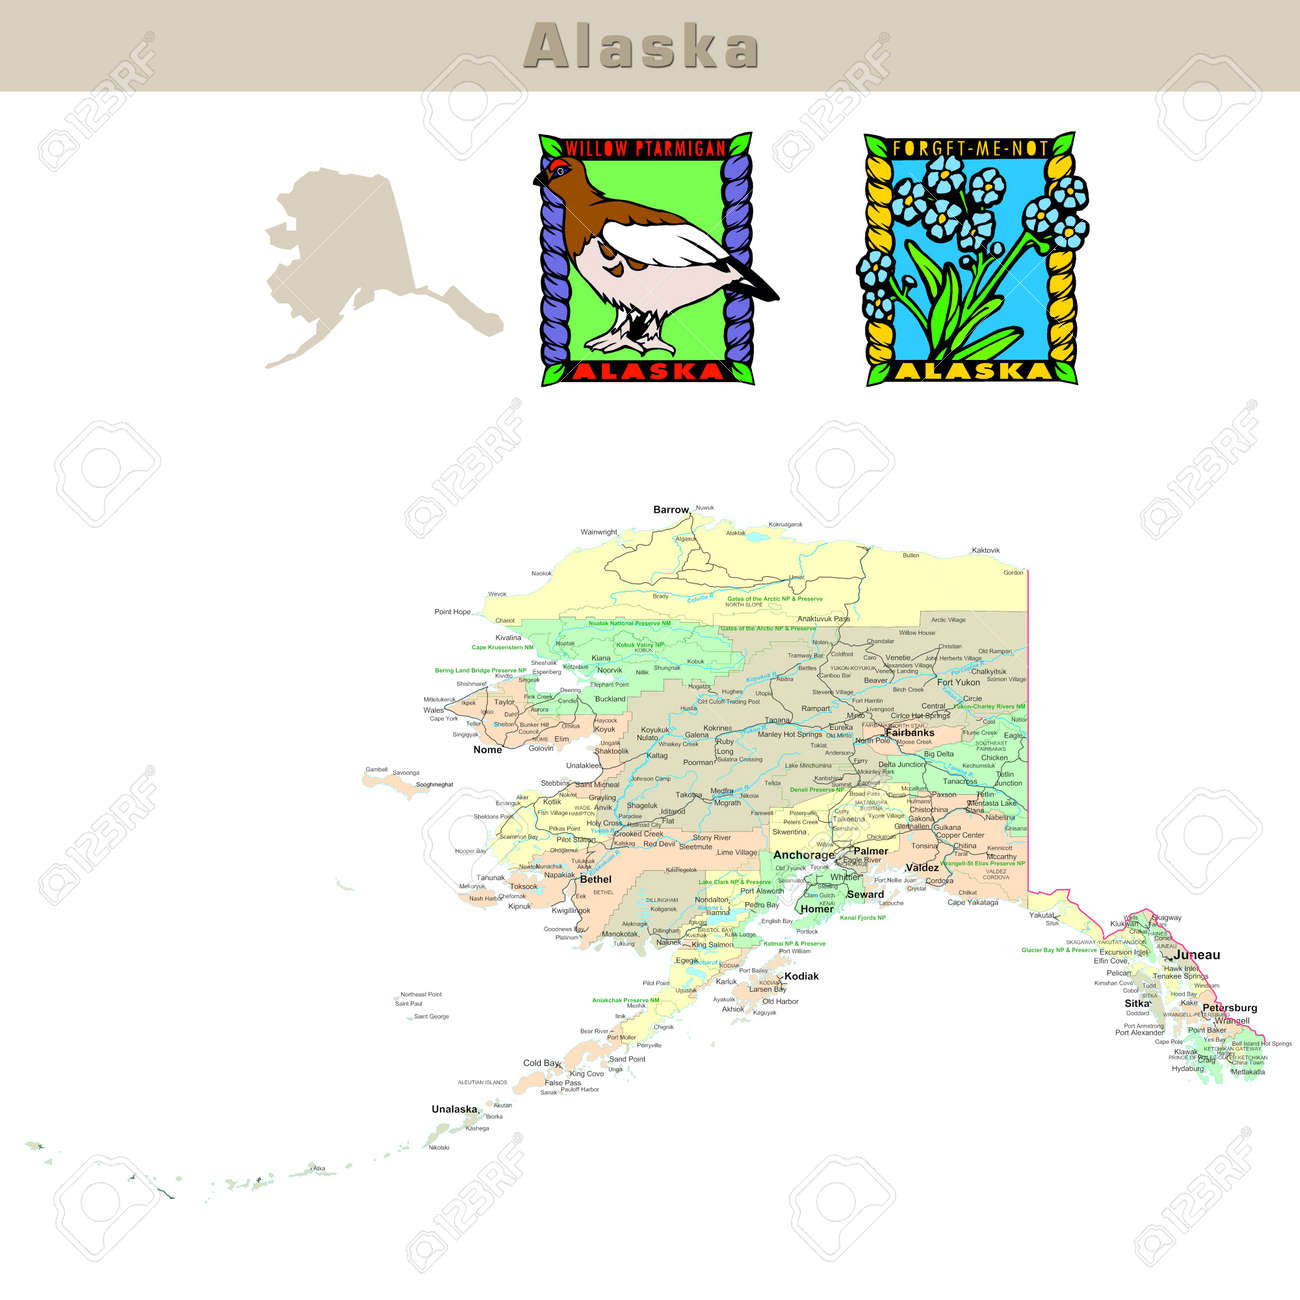 Political Map Of Alaska.Usa States Series Alaska Political Map With Counties Roads